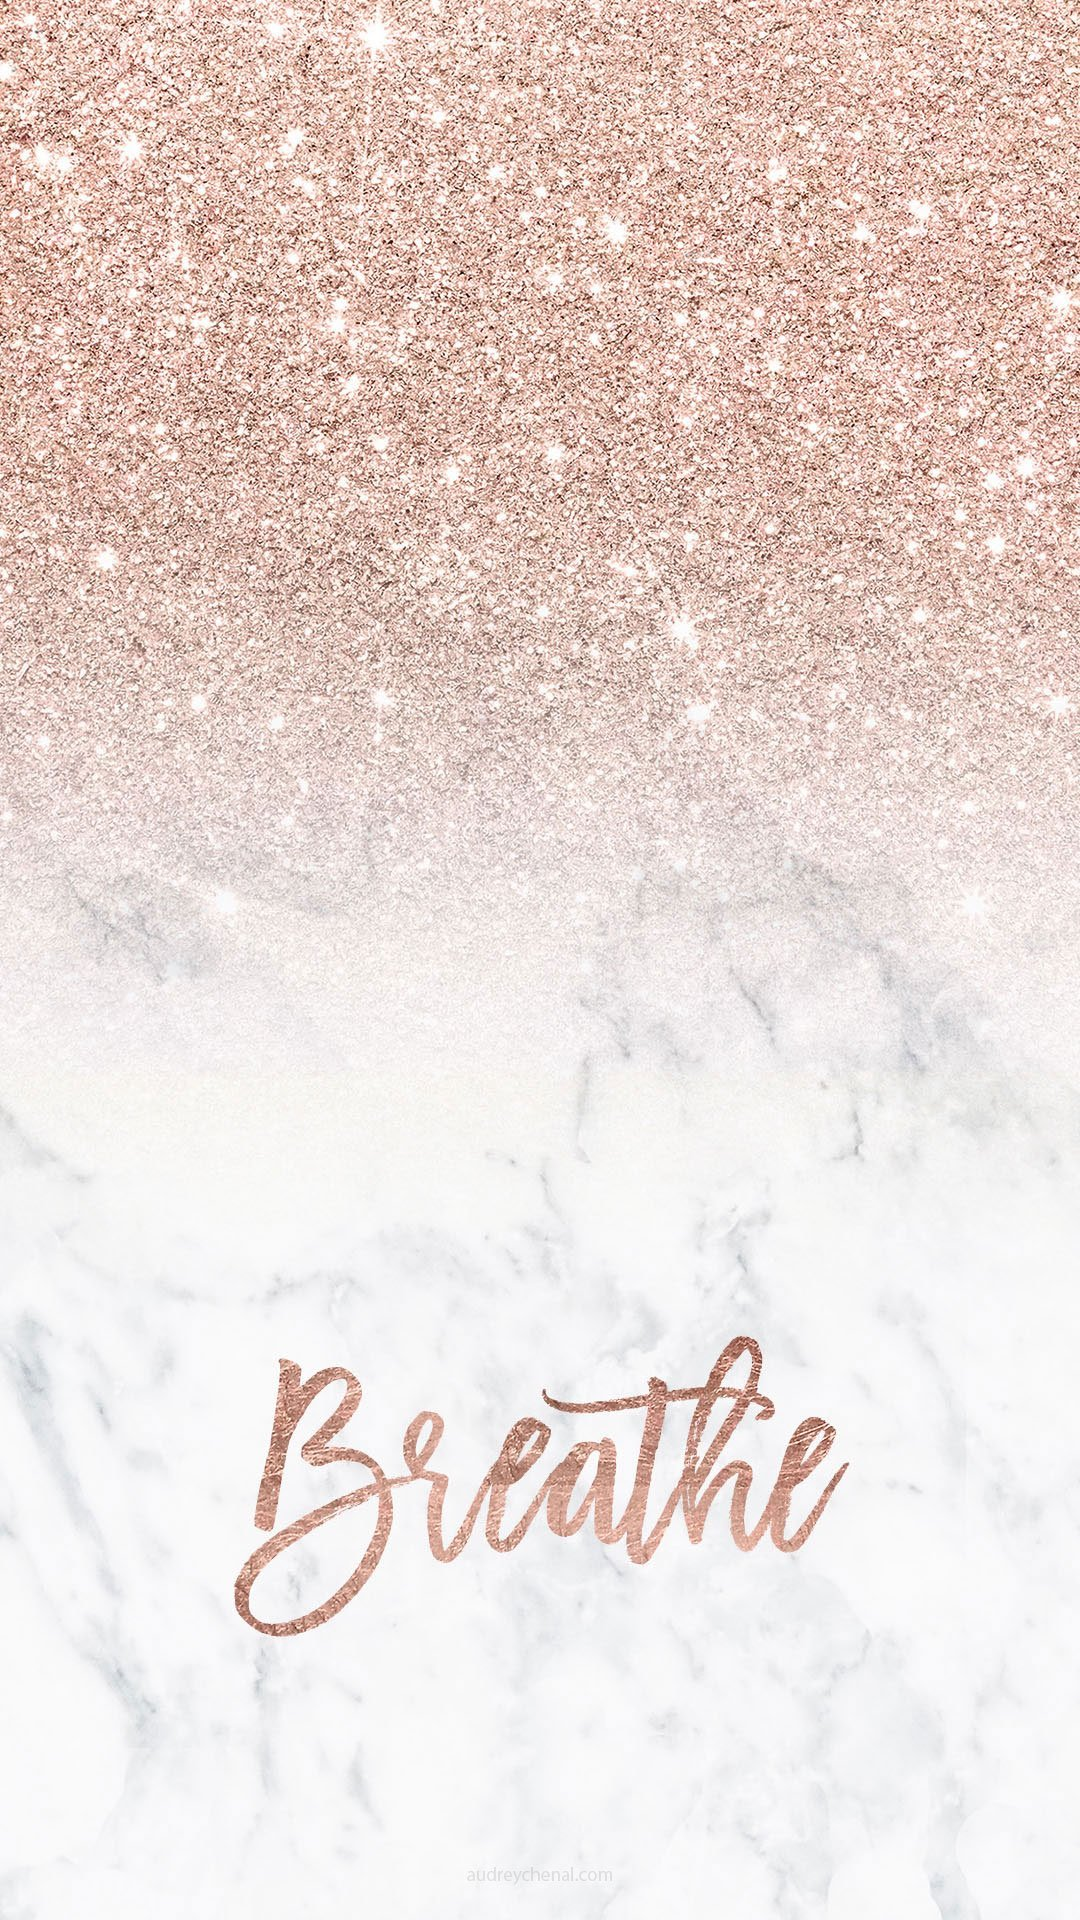 Modern Girly Free Iphone Wallpapers Background Download